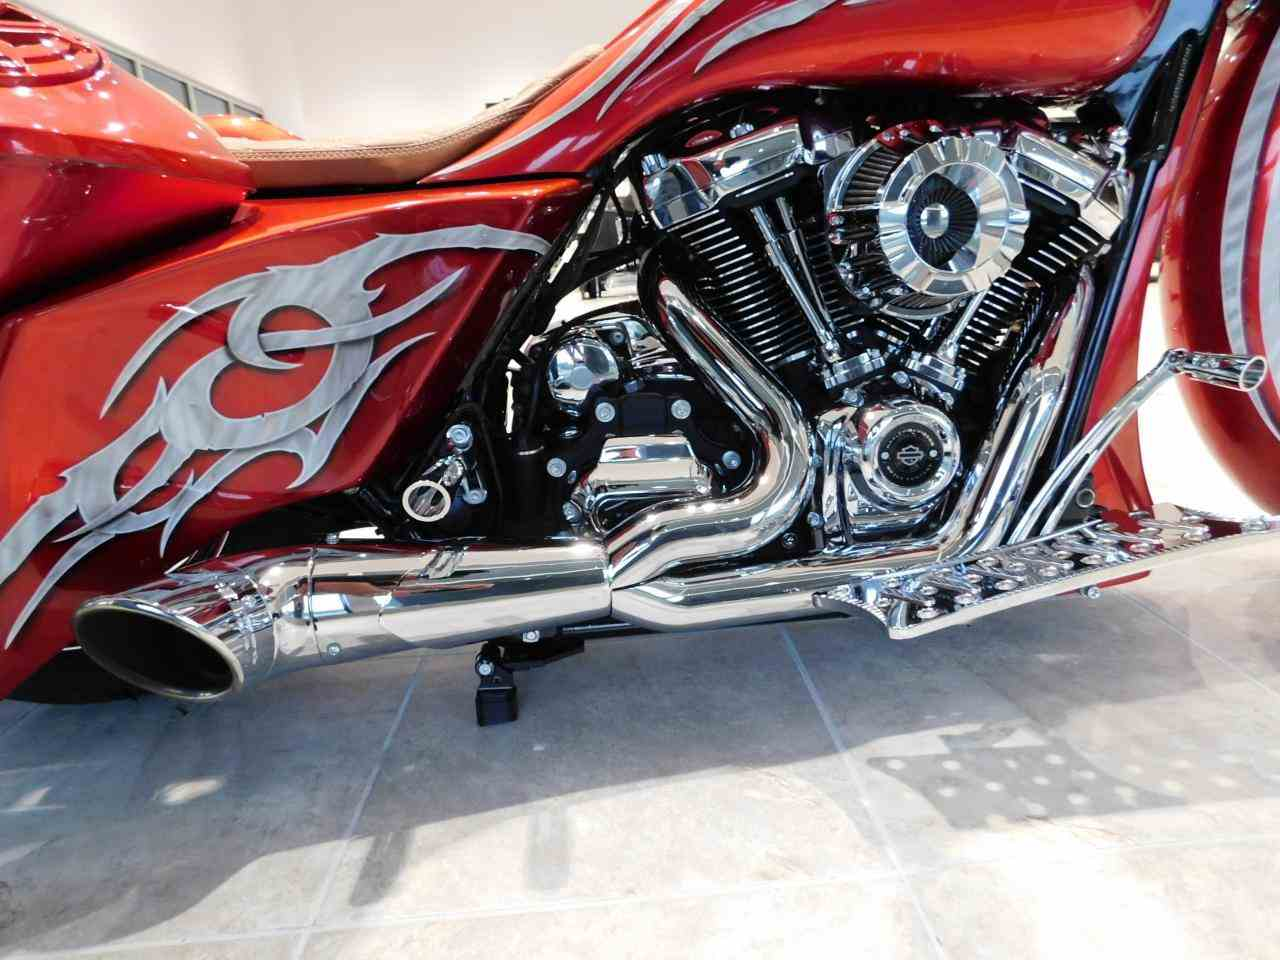 Large Picture of '17 Harley-Davidson Motorcycle - $98,000.00 - MOAJ